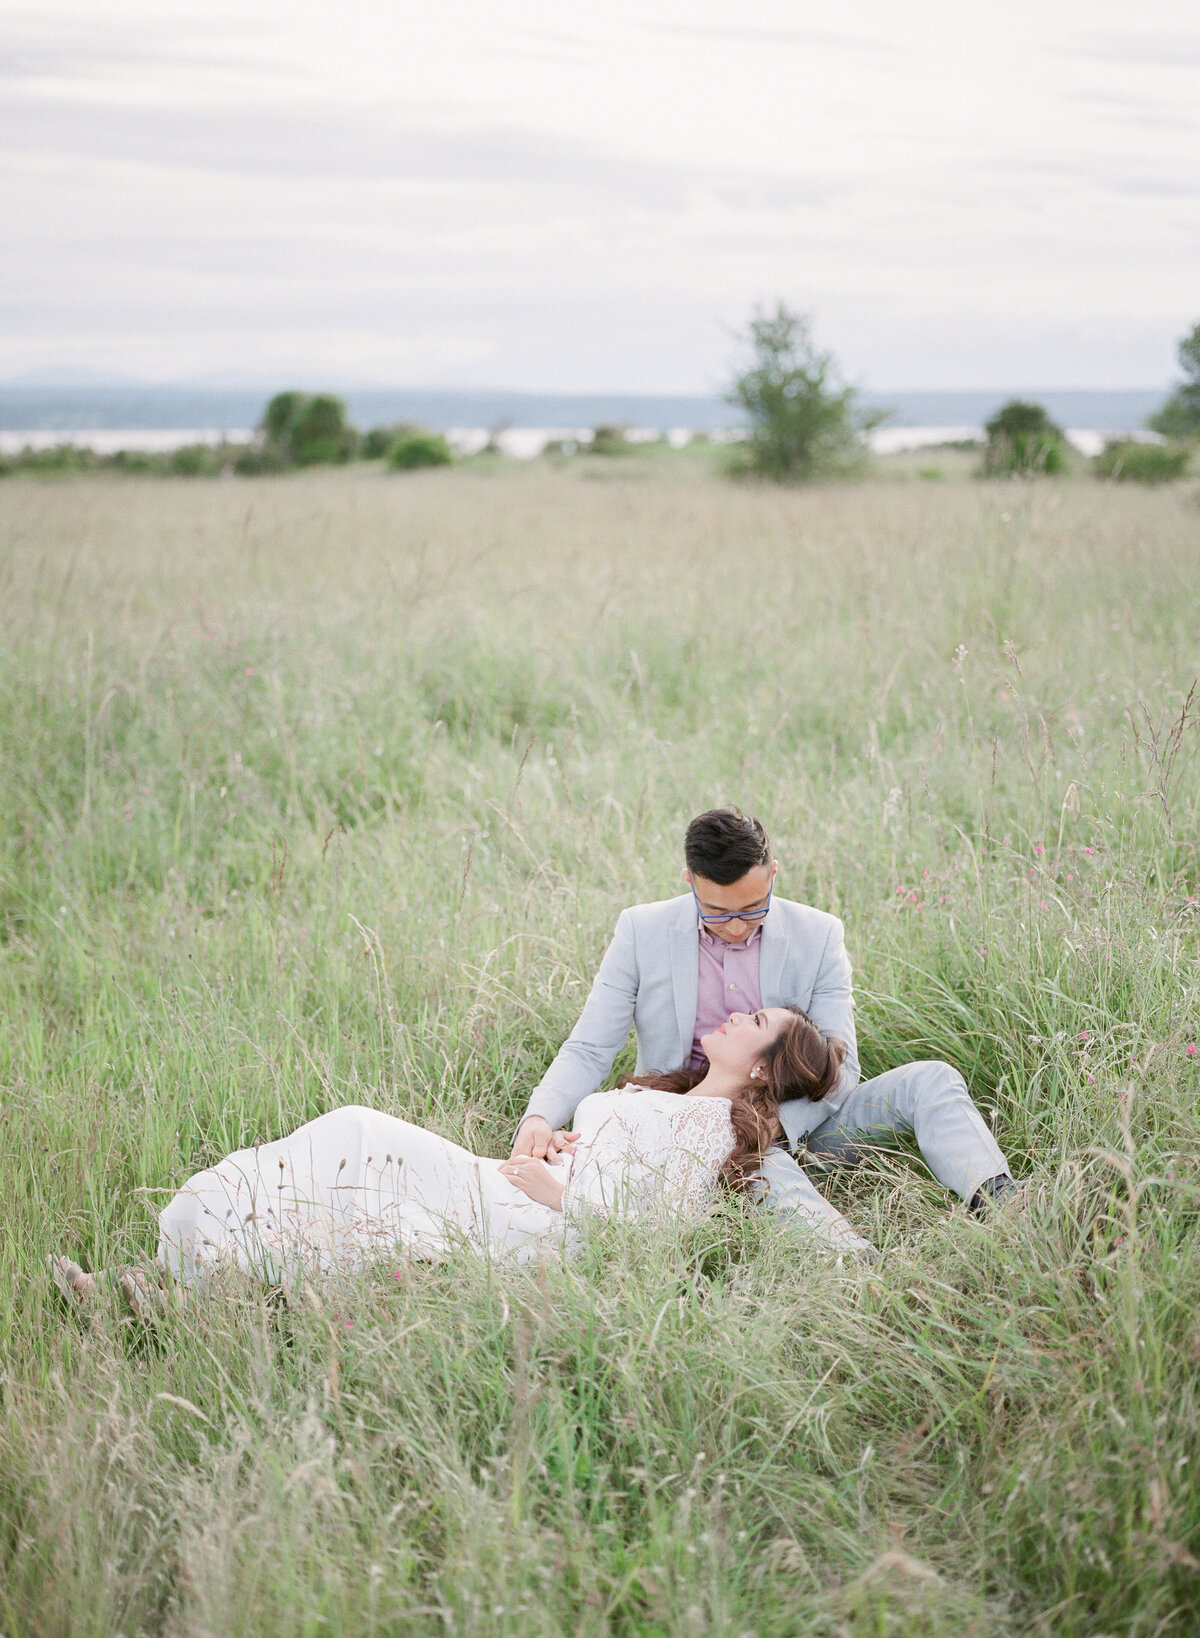 Nikki & Matt - Discovery Park Engagement - Tetiana Photgoraphy-39